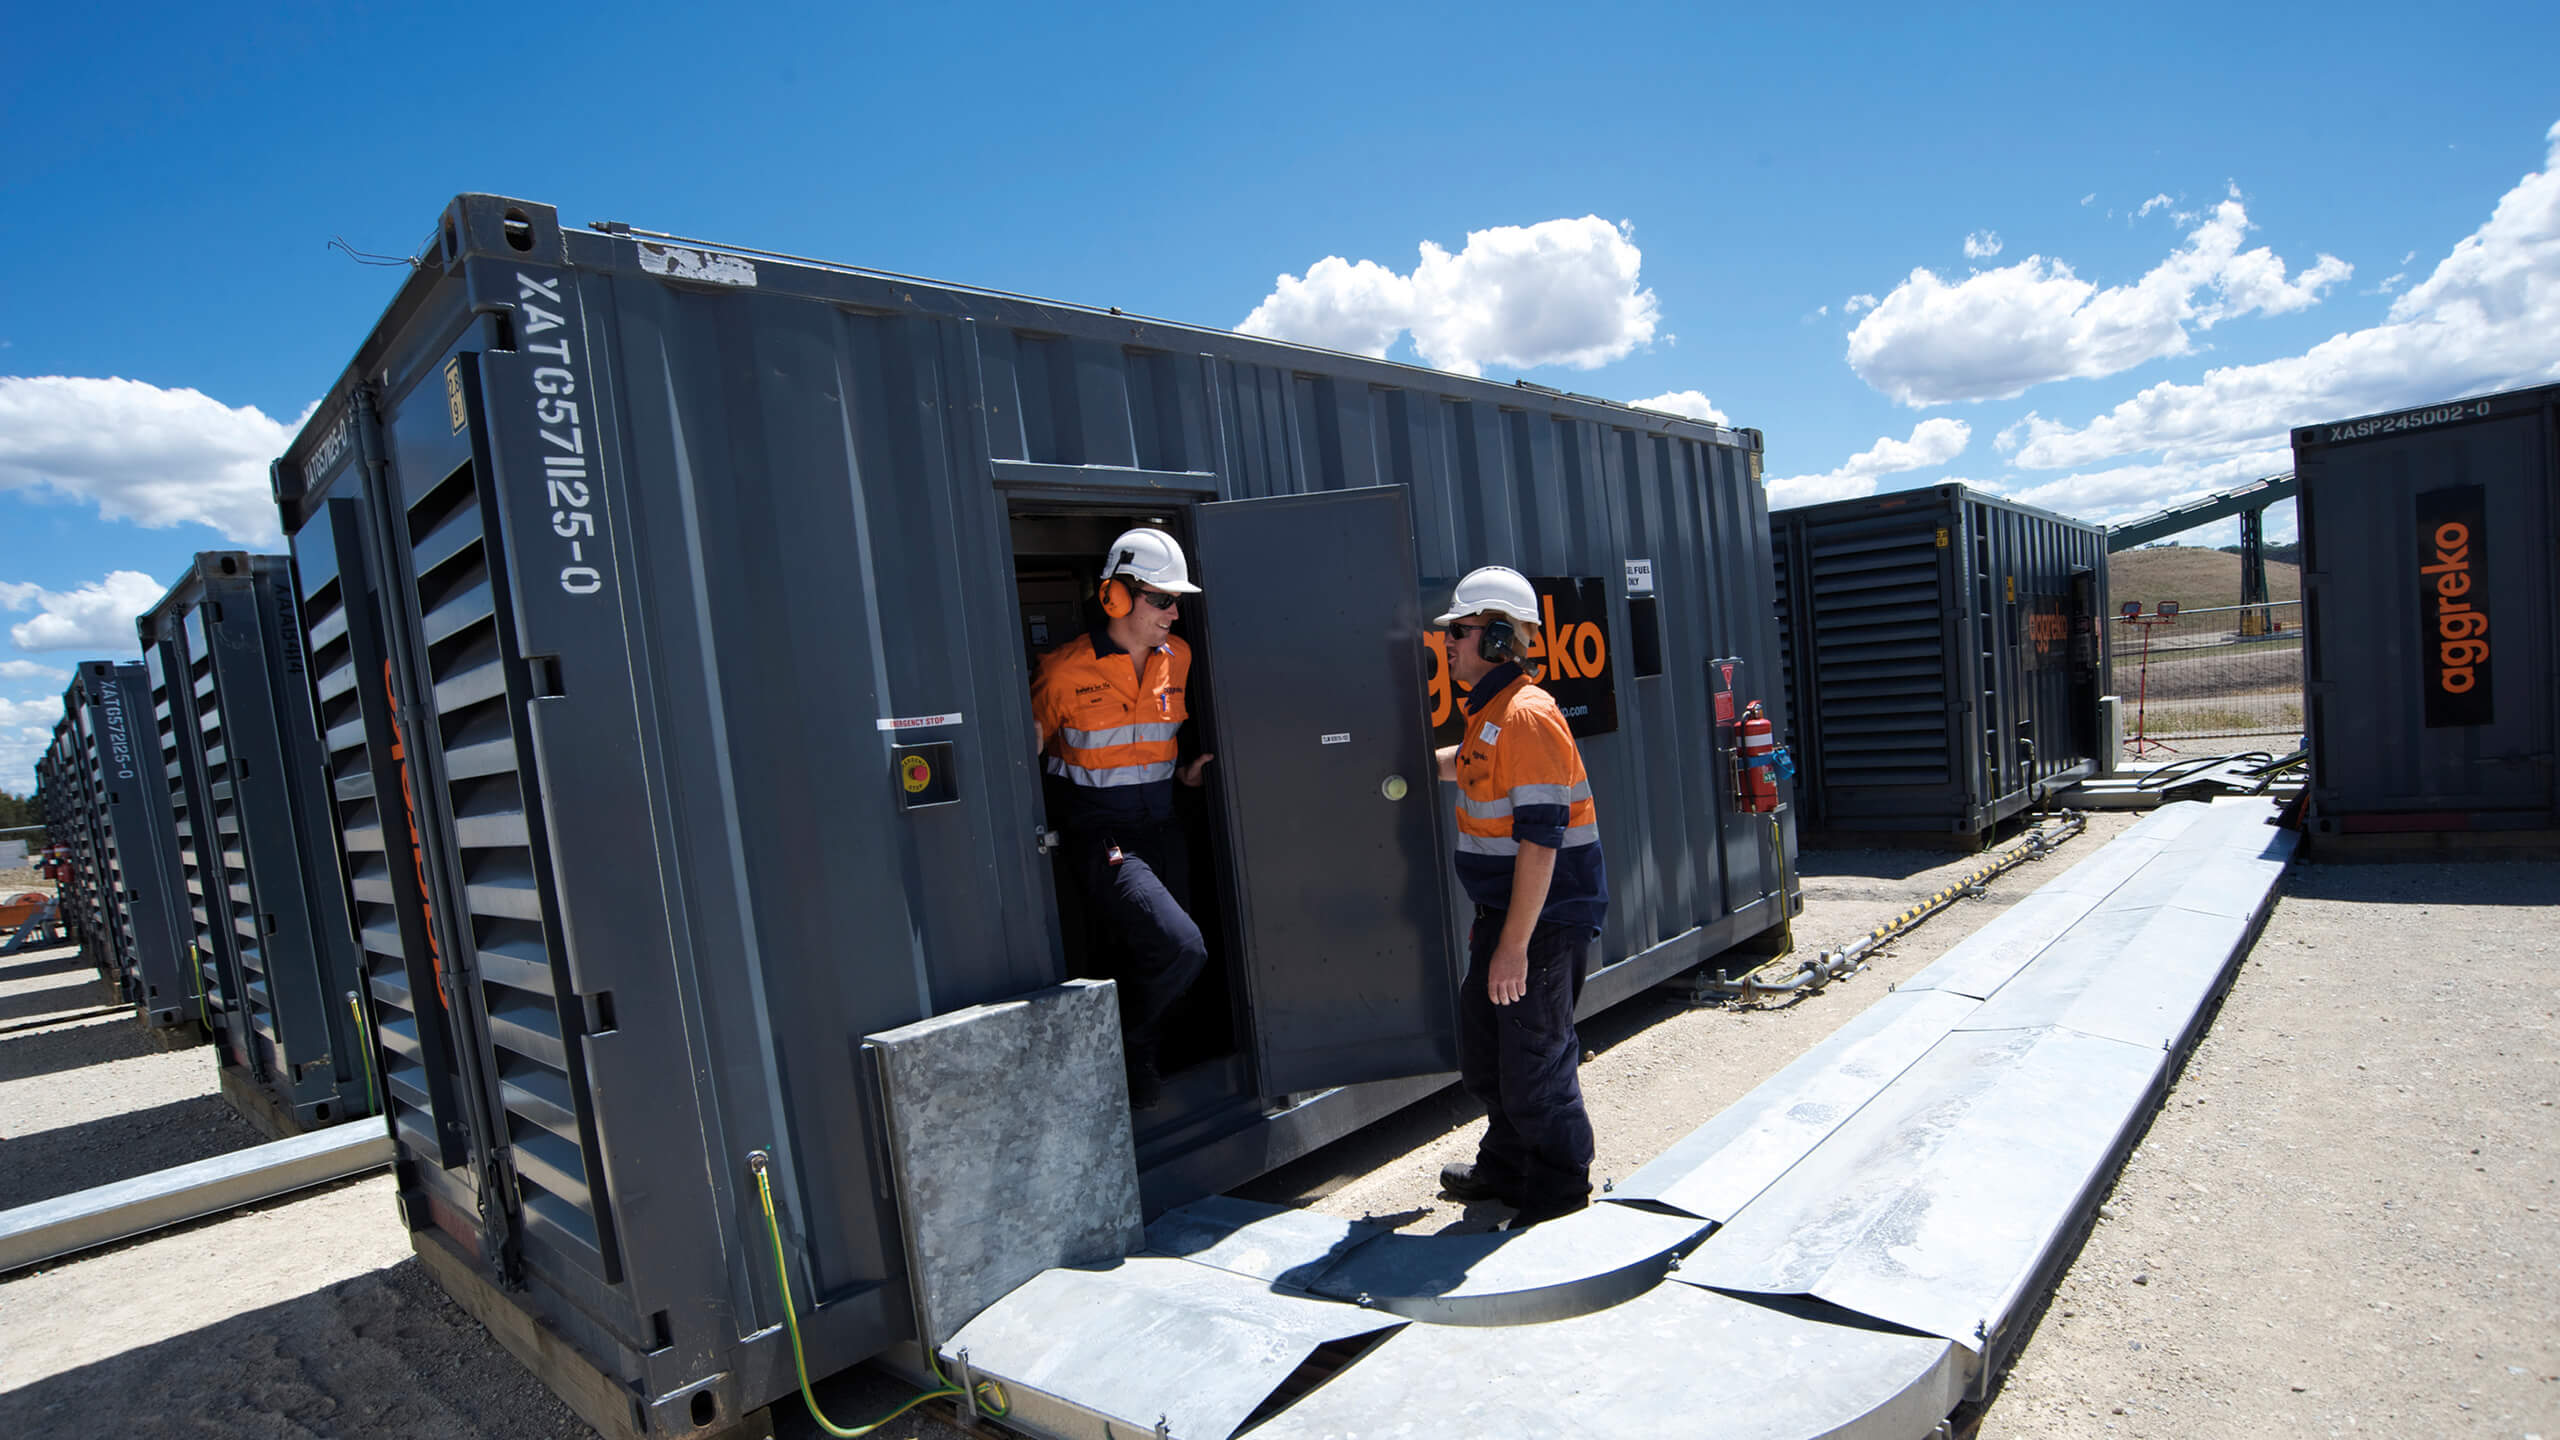 Gold mine to introduce renewable energy and battery storage to lower costs and environmental impact